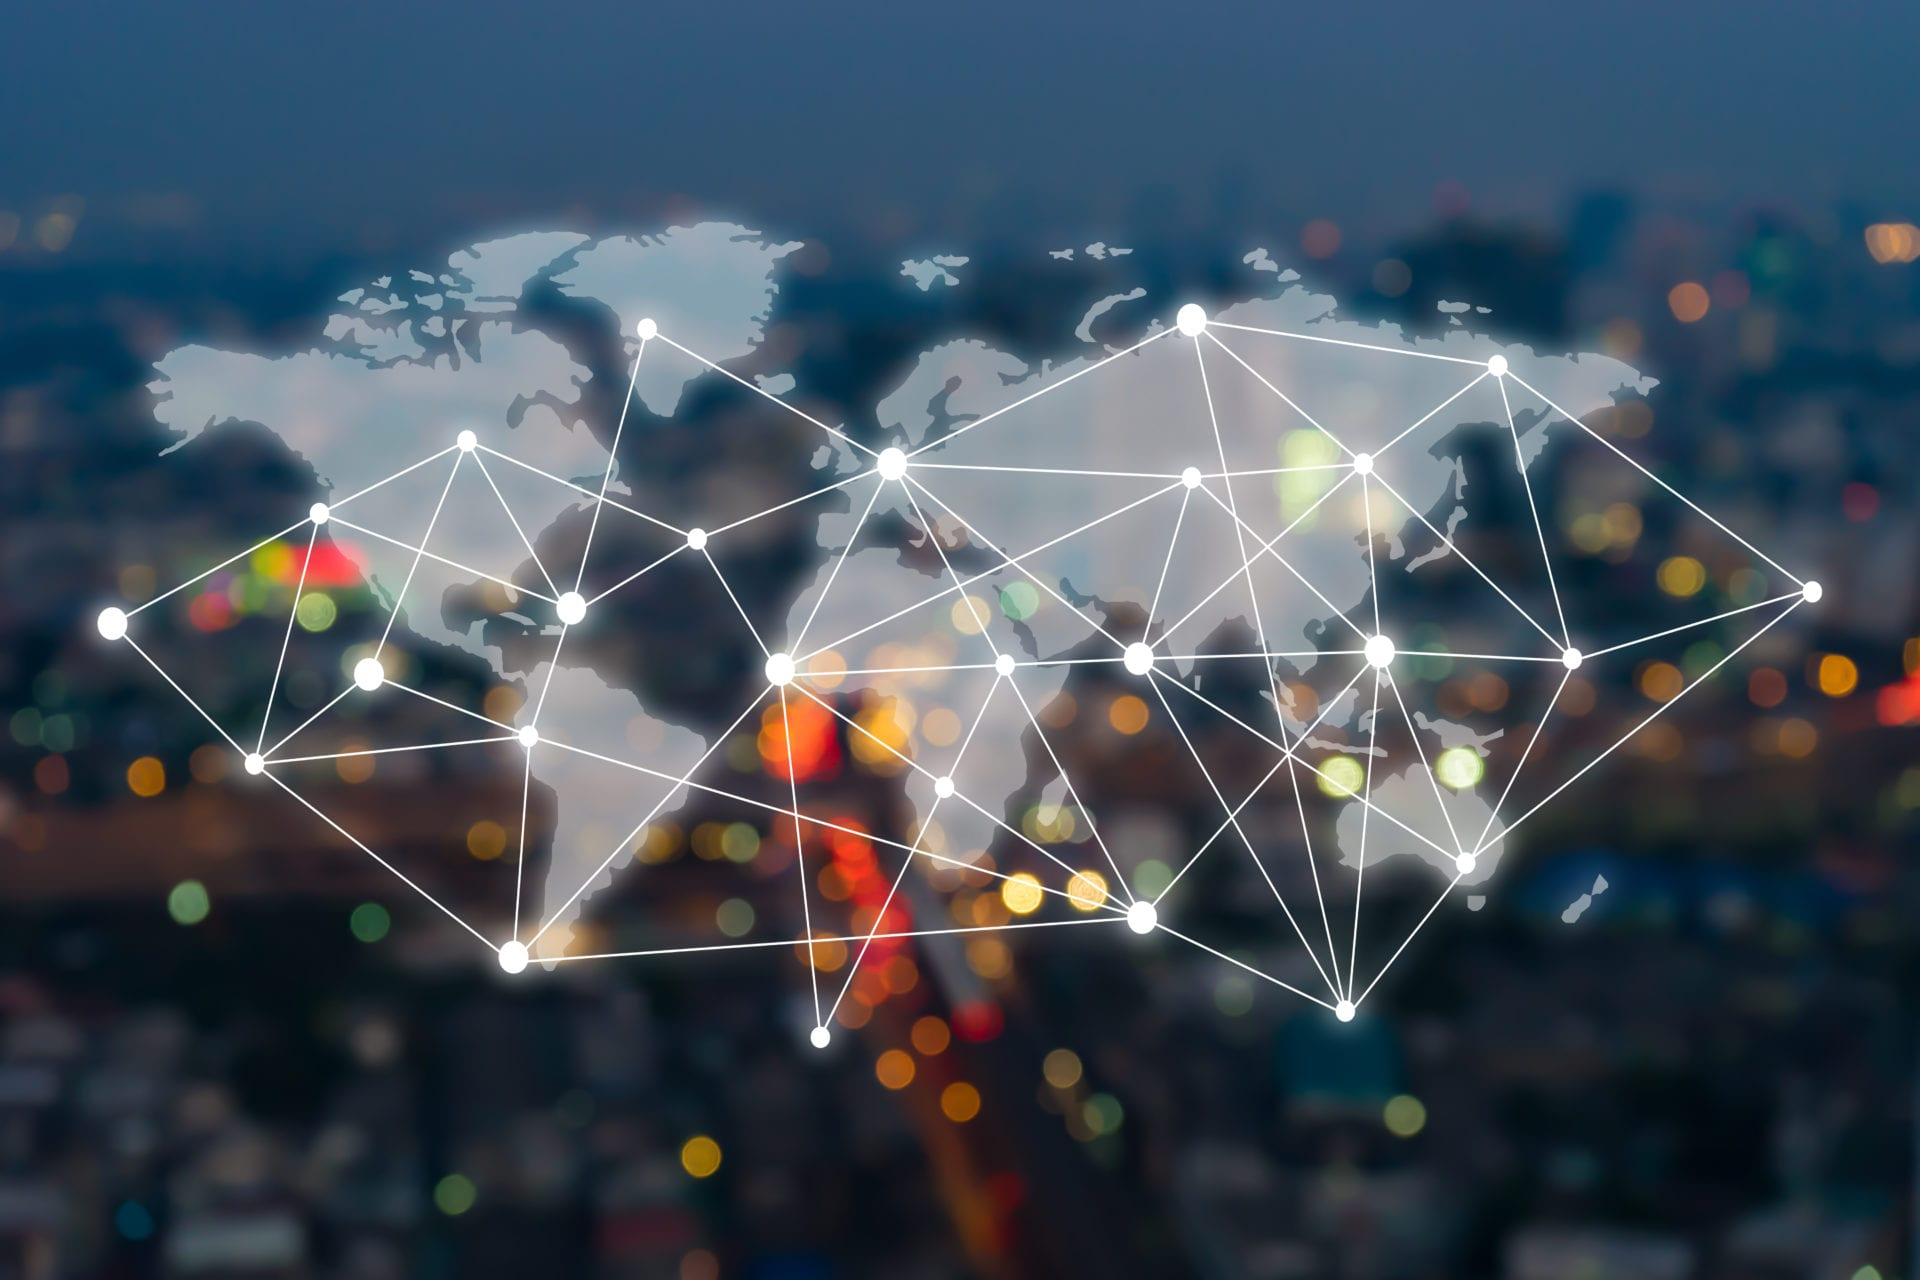 Big data connections. IOT - internet of things